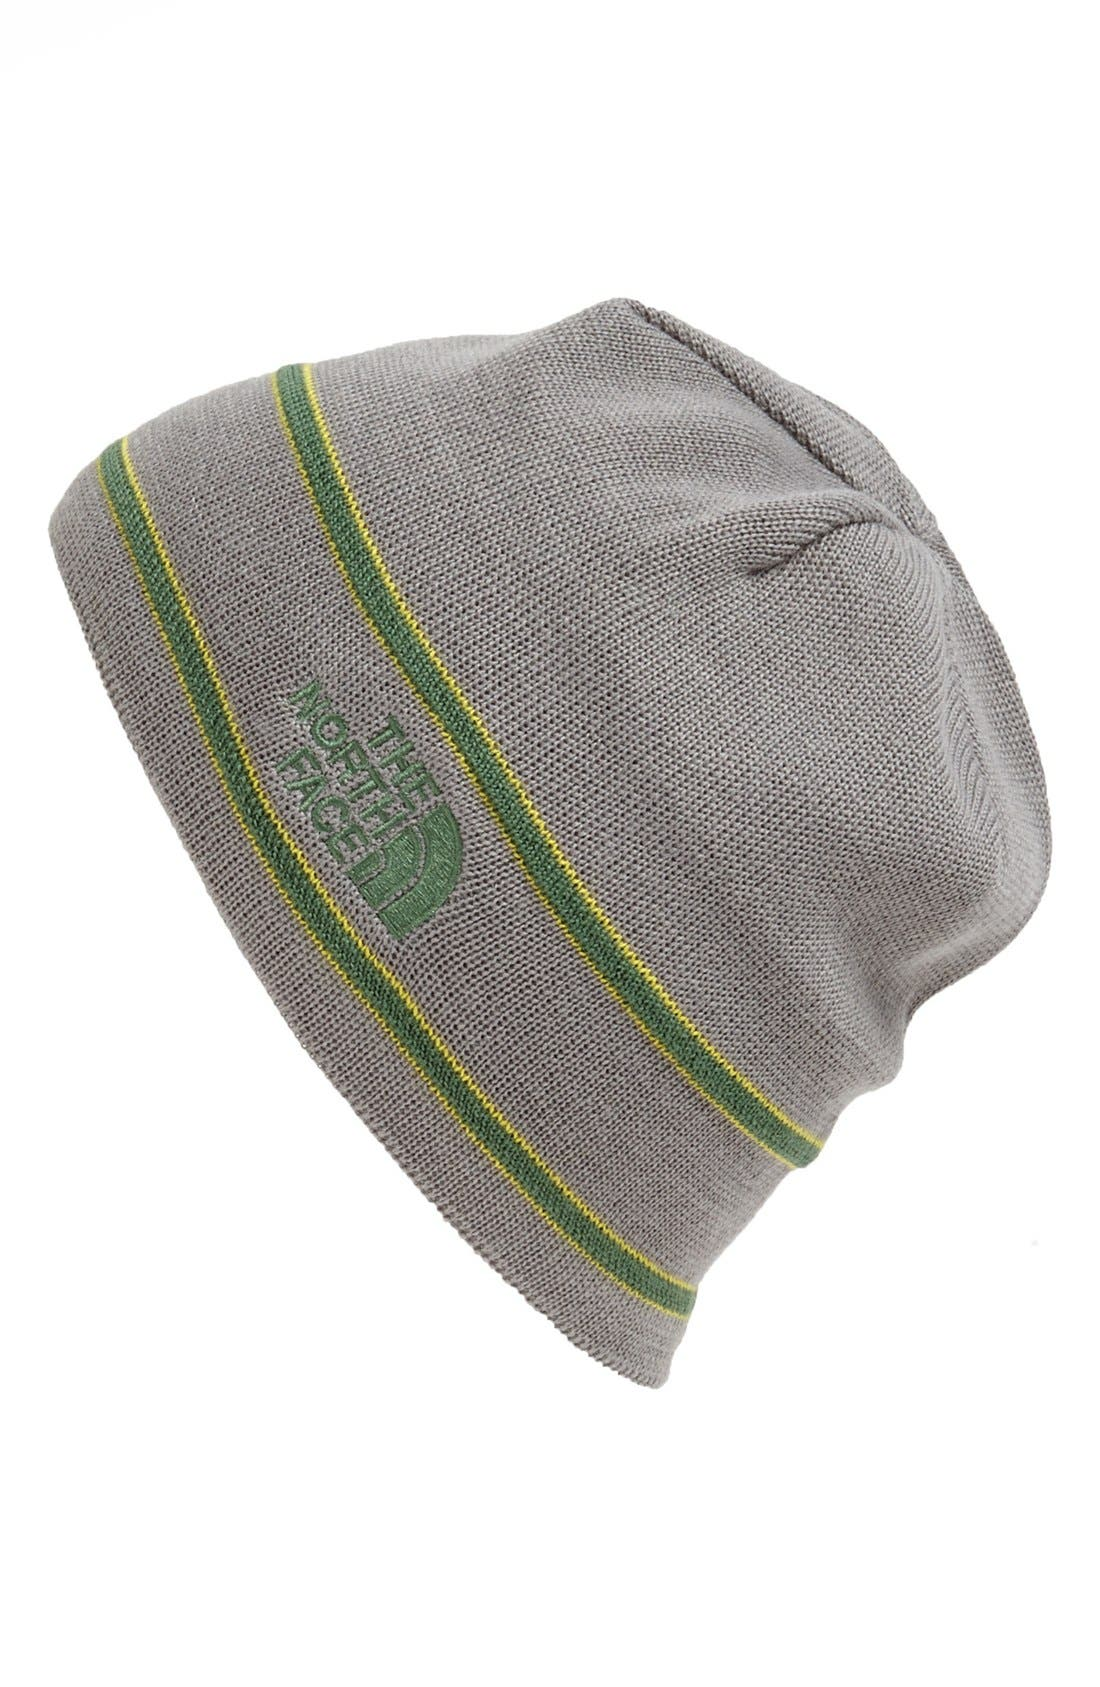 Alternate Image 1 Selected - The North Face Knit Cap